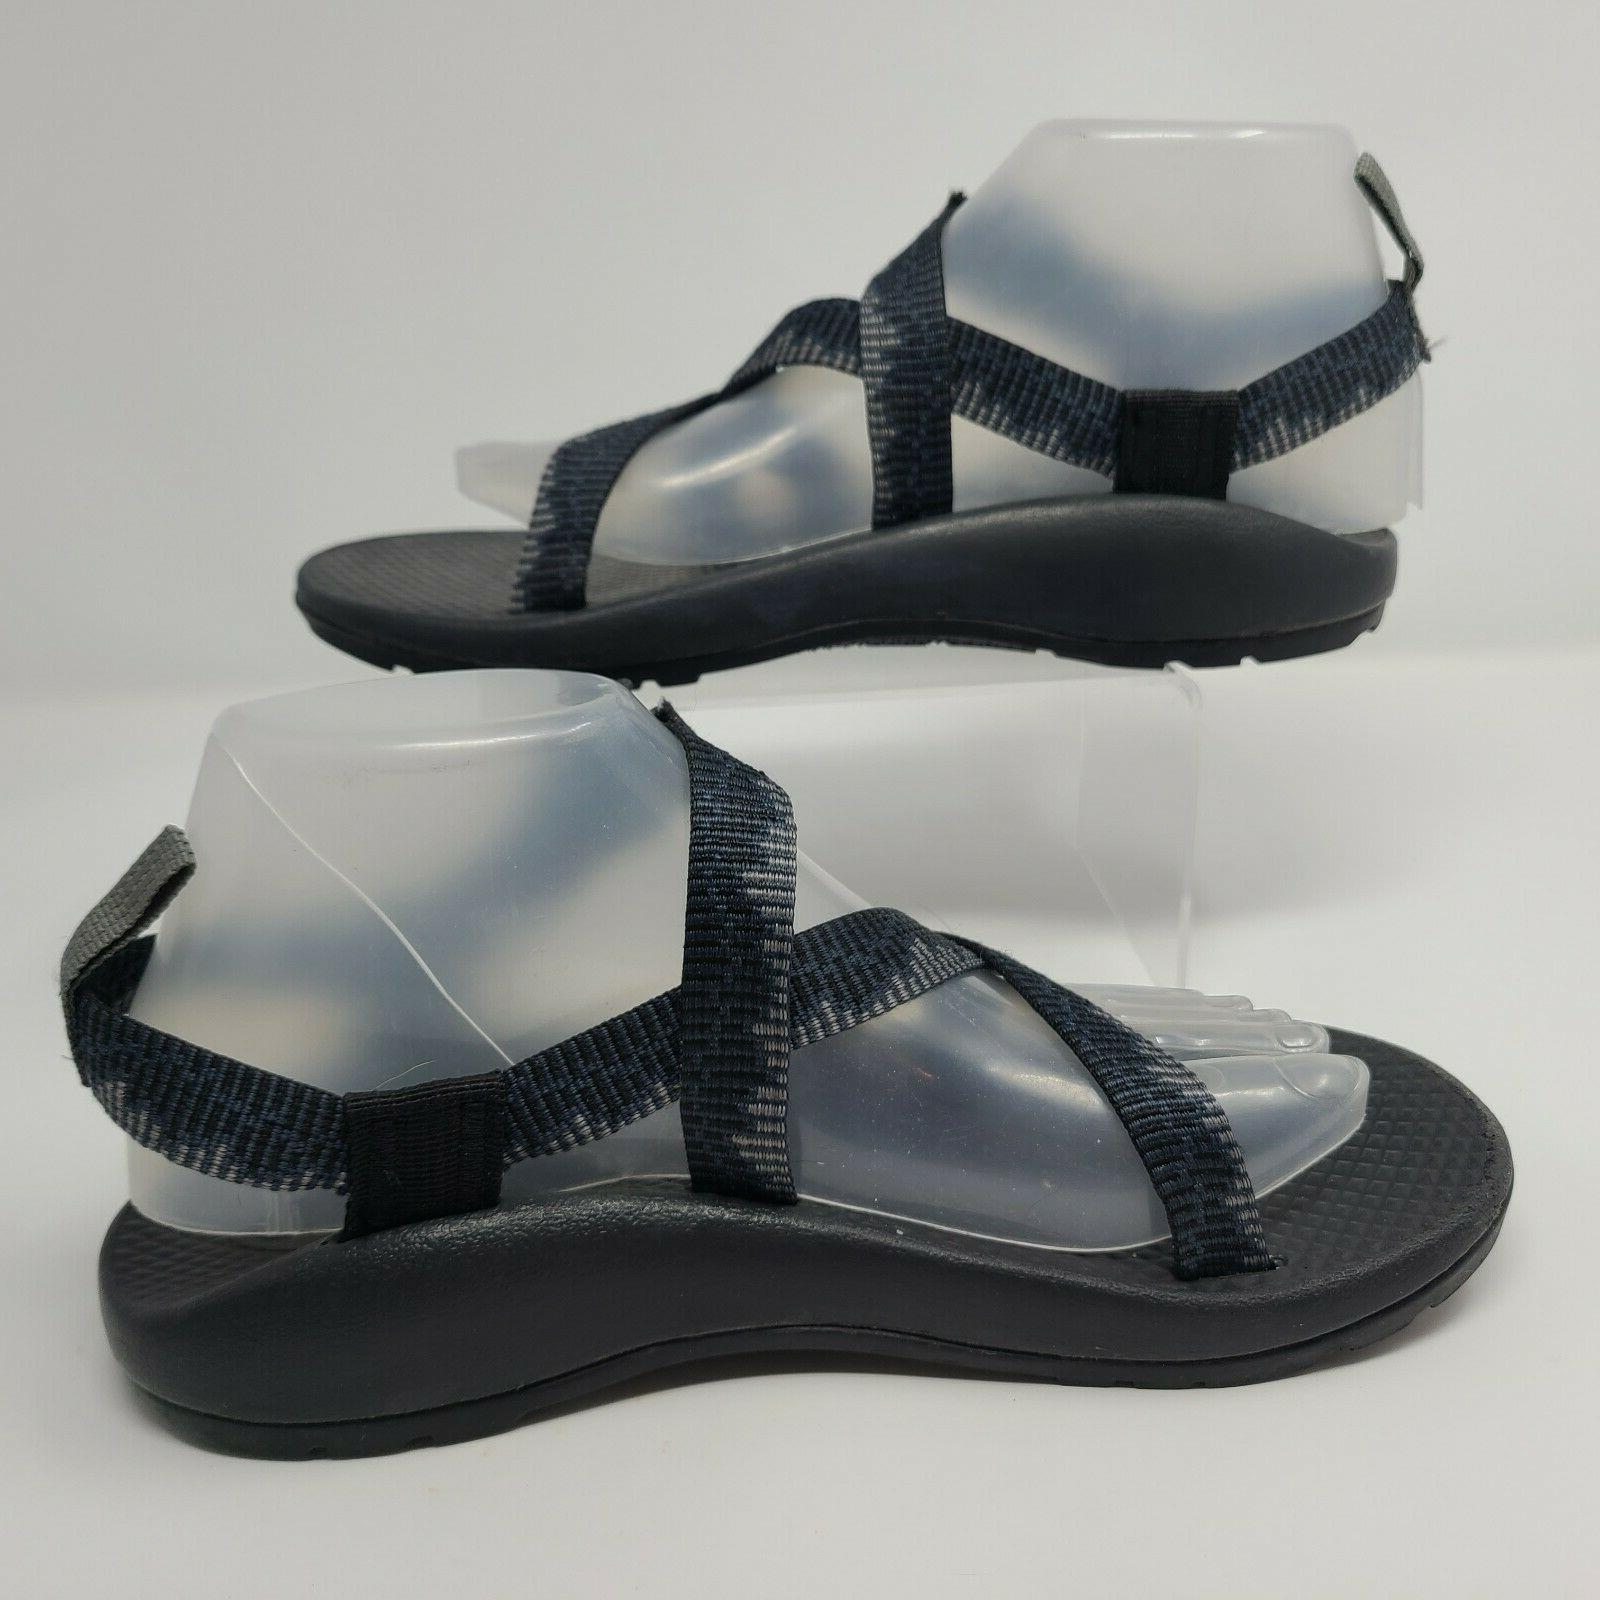 Chaco Z Hiking Sandals Sport Size 8